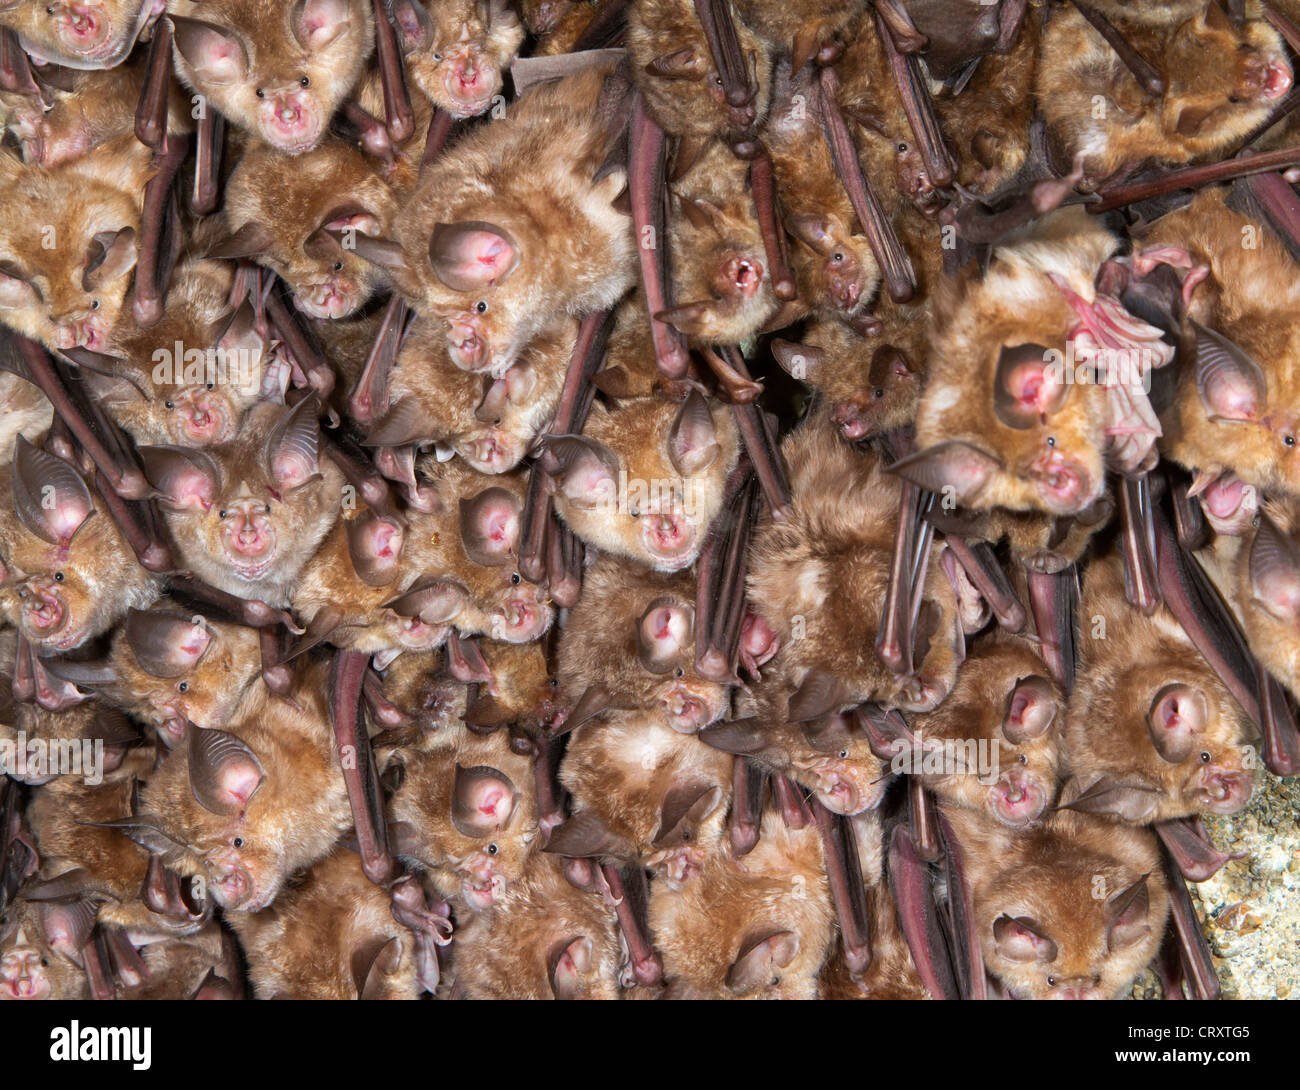 A colony of the greater horseshoe bats (Rhinolophus ferrumequinum) on the ceiling of an abandoned monastery. - Stock Image